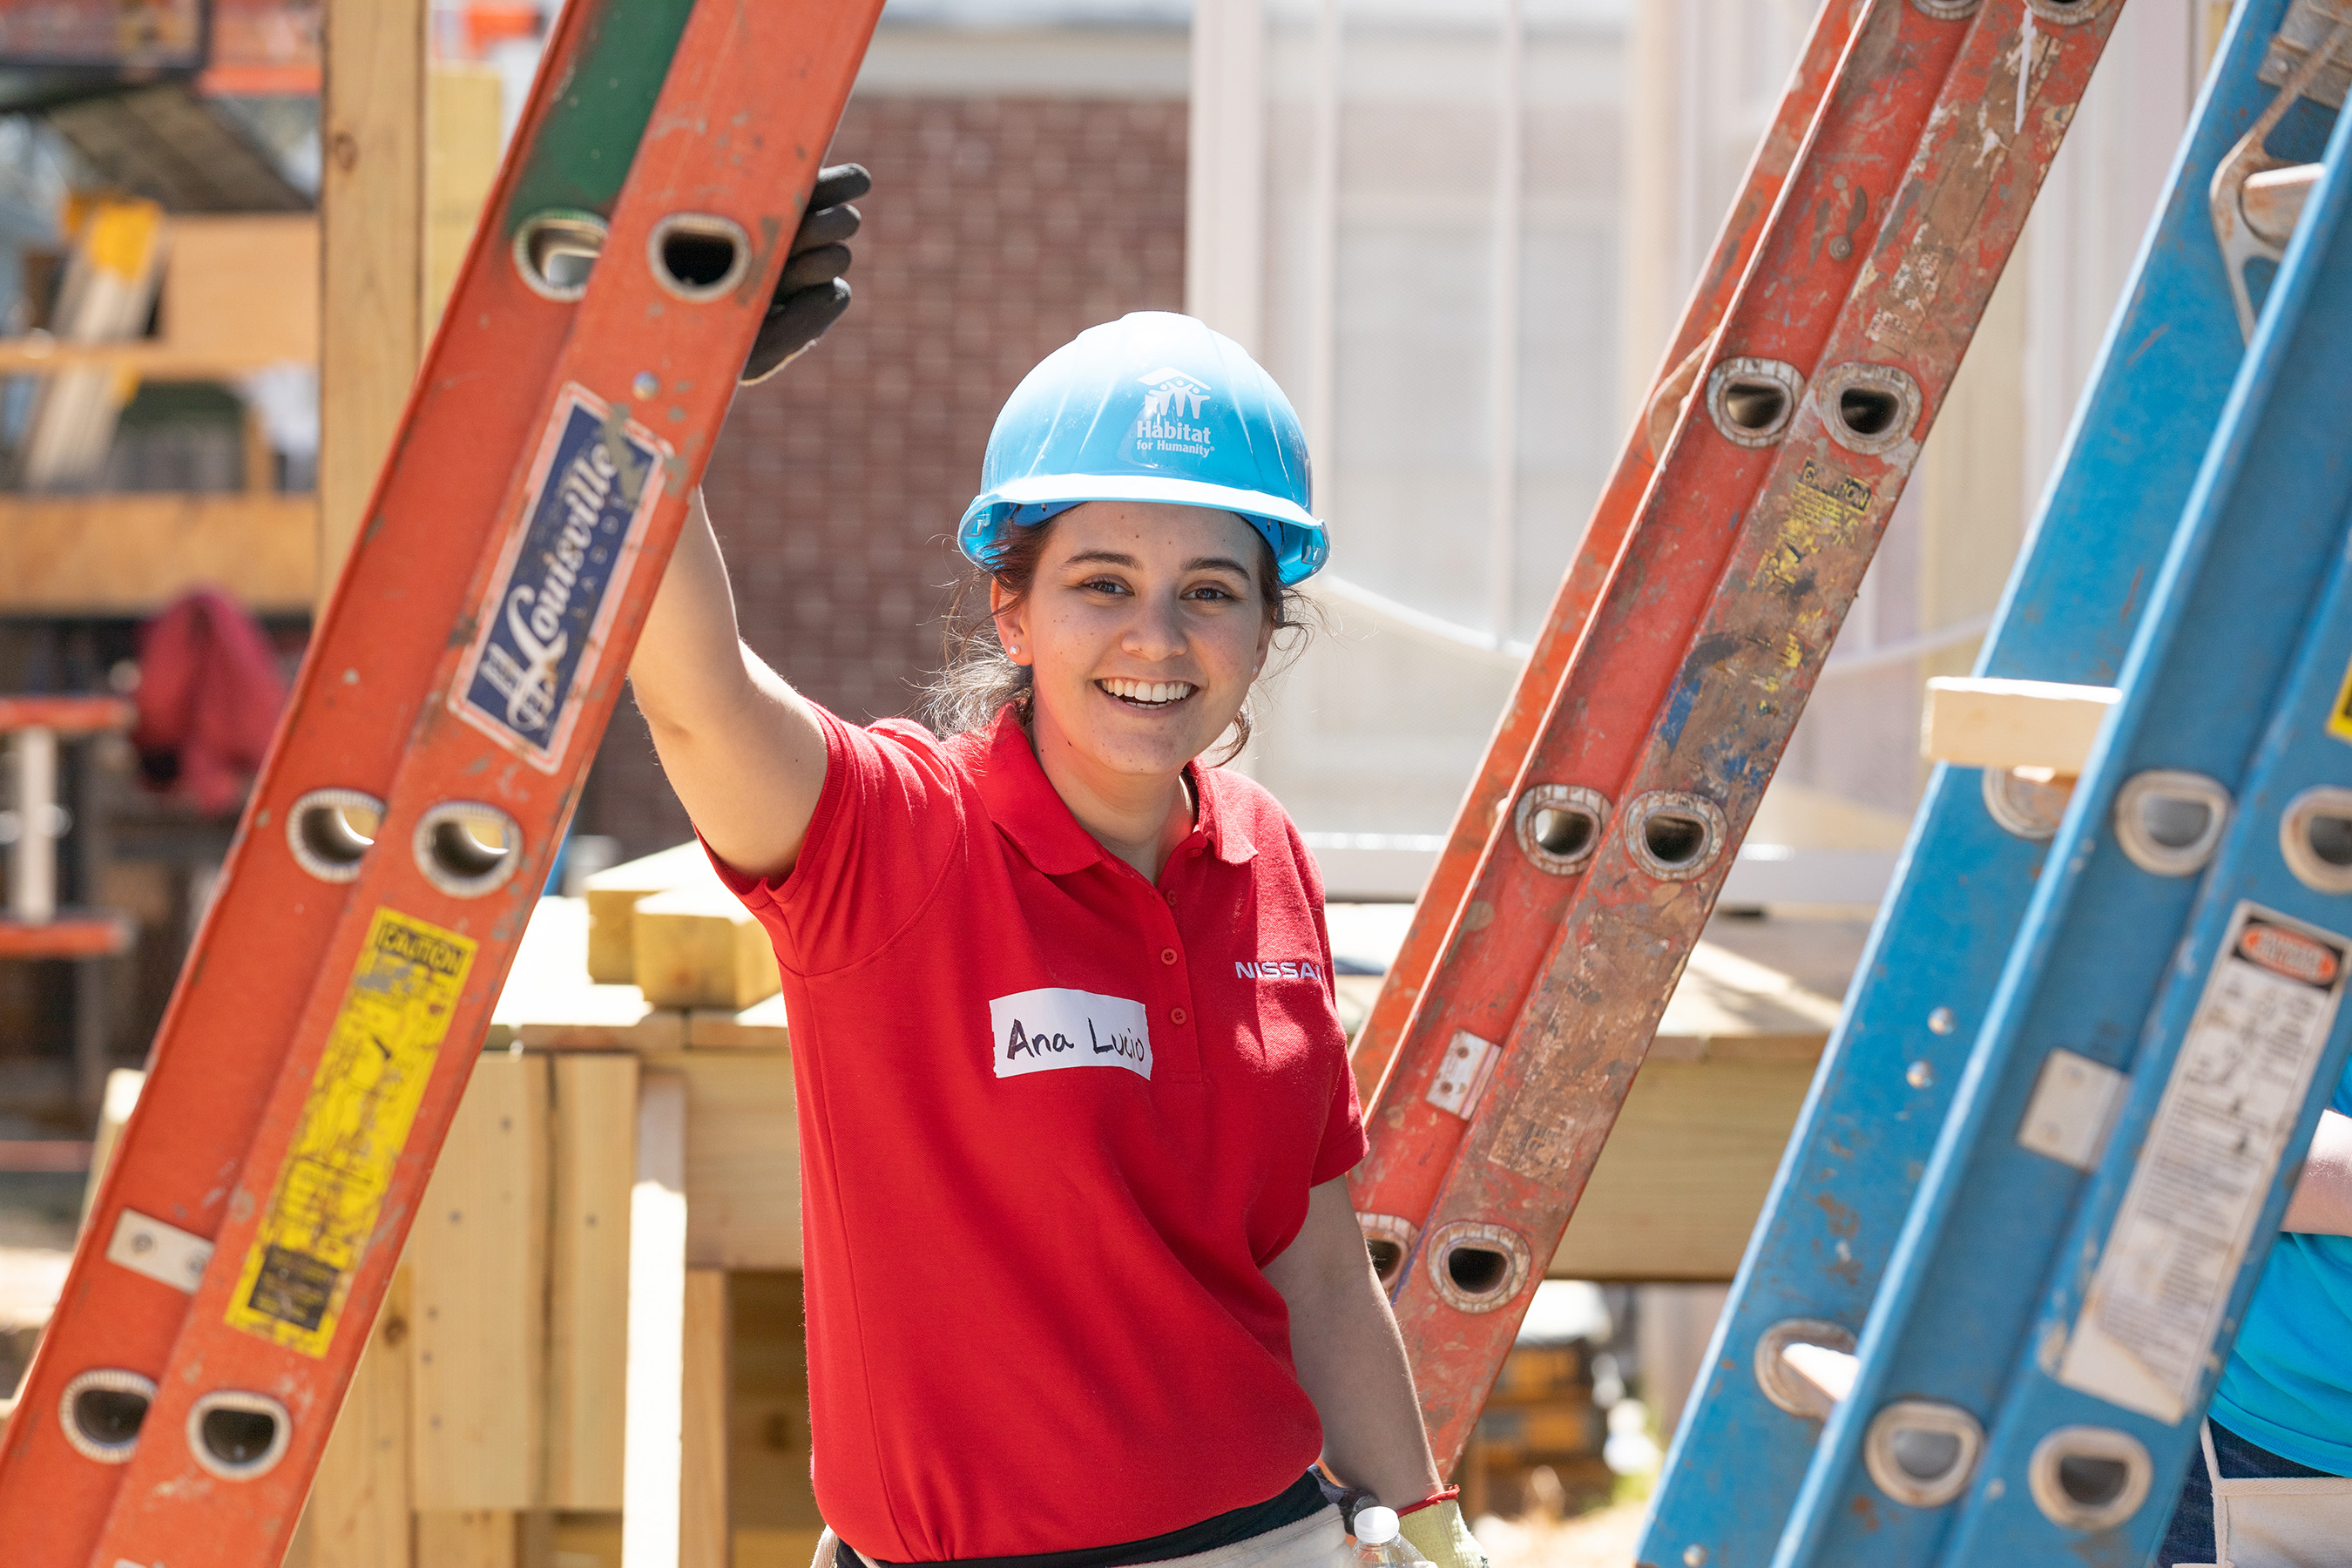 A volunteer from Nissan on the build site during the launch of Habitat for Humanity's Home is the Key campaign in Atlanta.